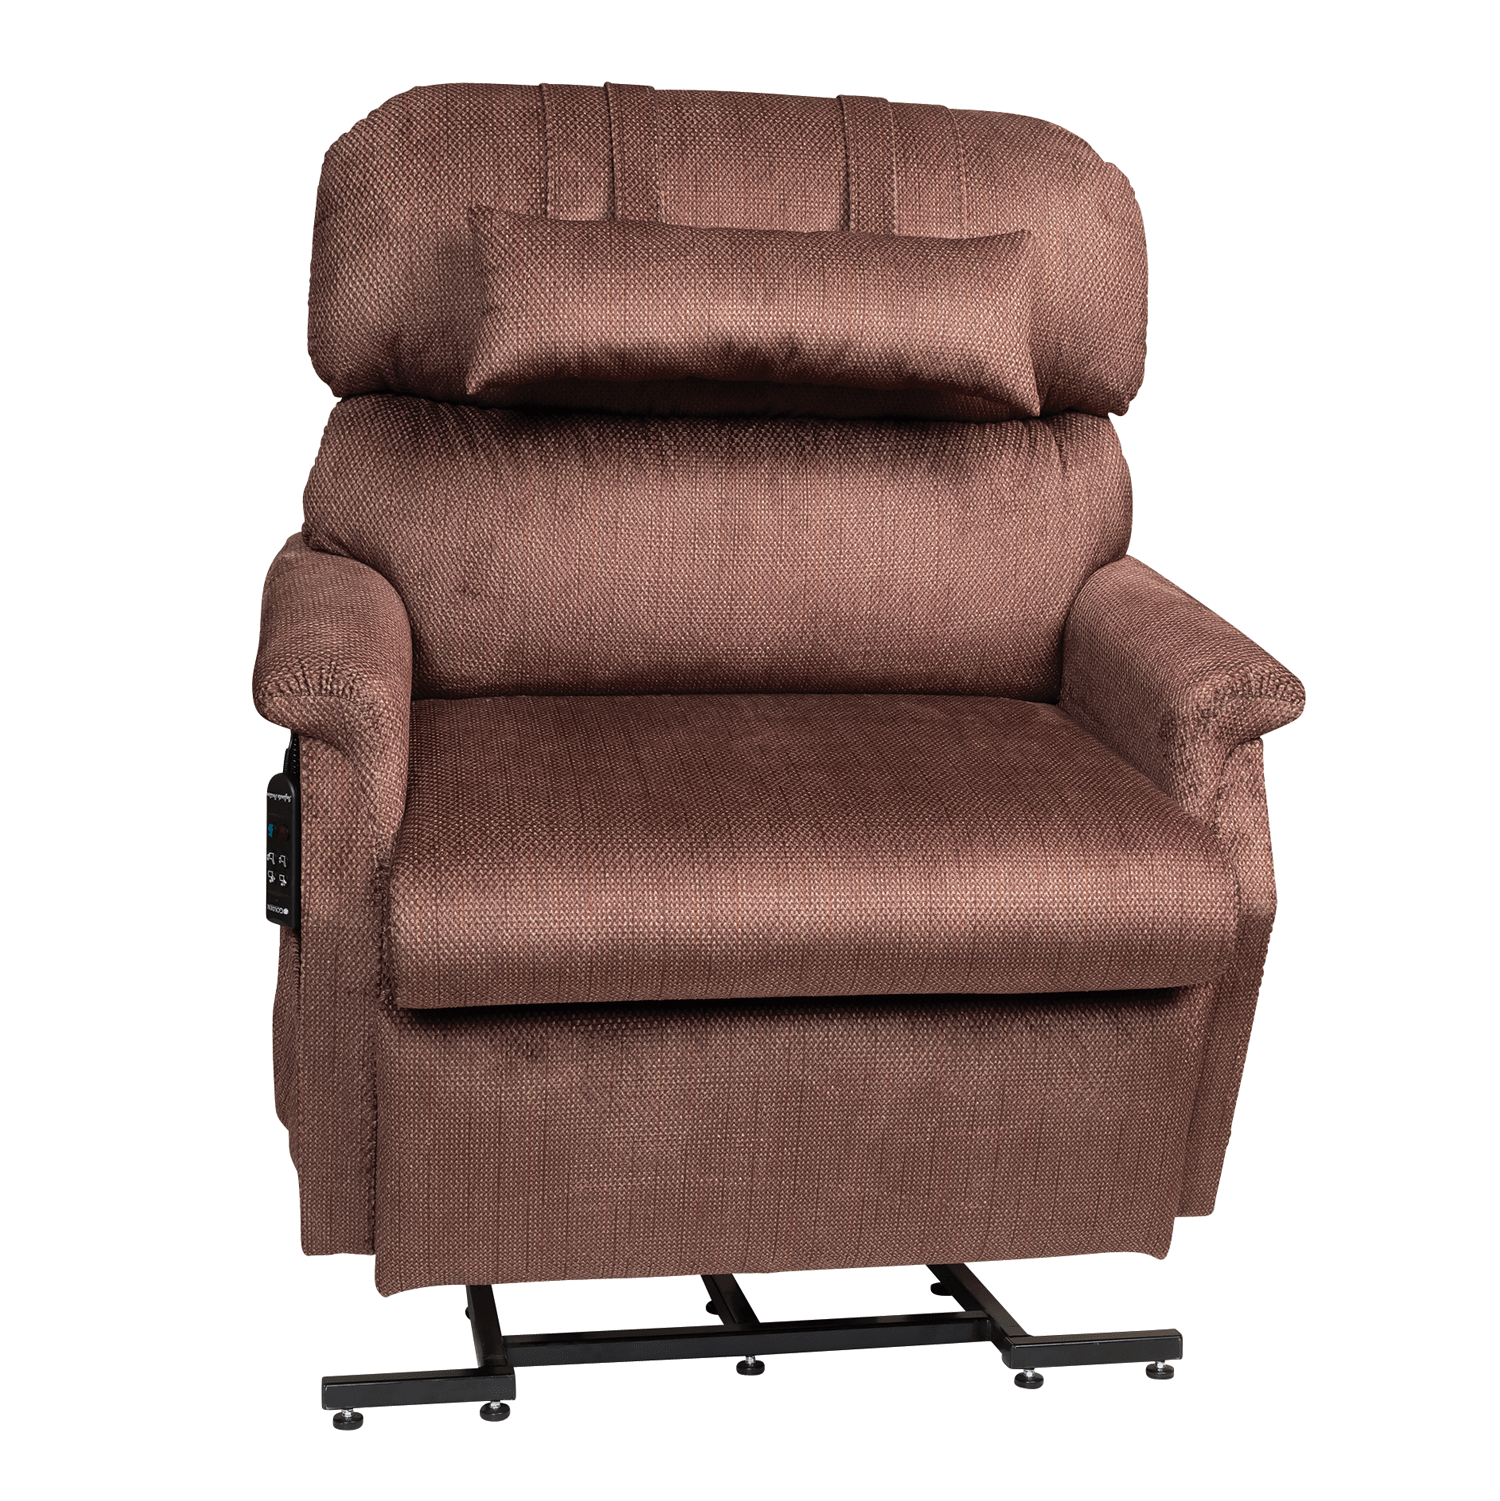 Lift Chair Repair Comforter Extra Wide Lift Chair Lincoln Mobility